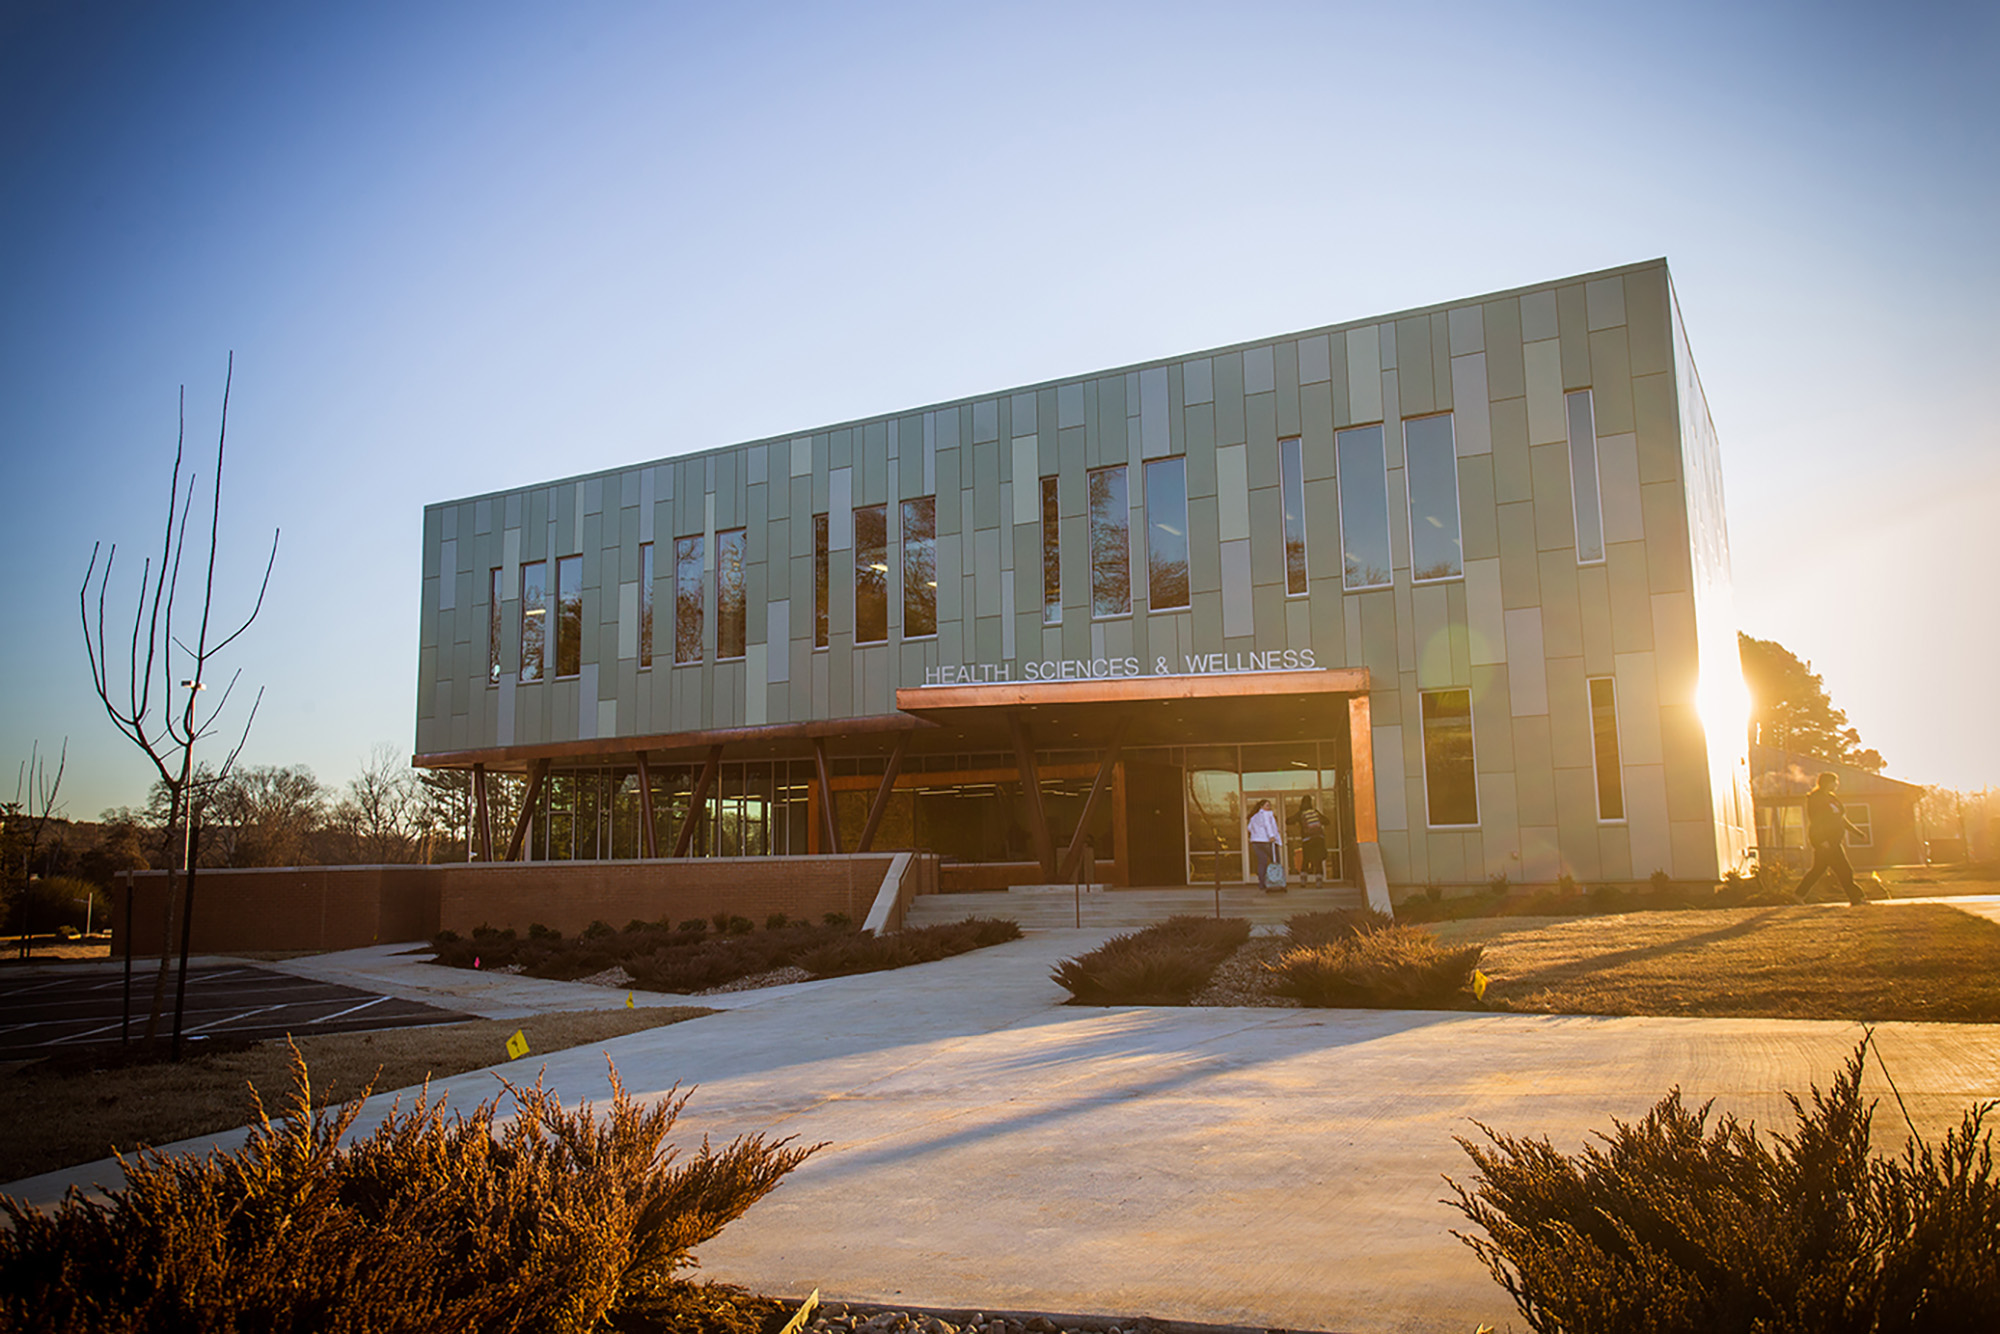 a photo of the ozark campus health science building